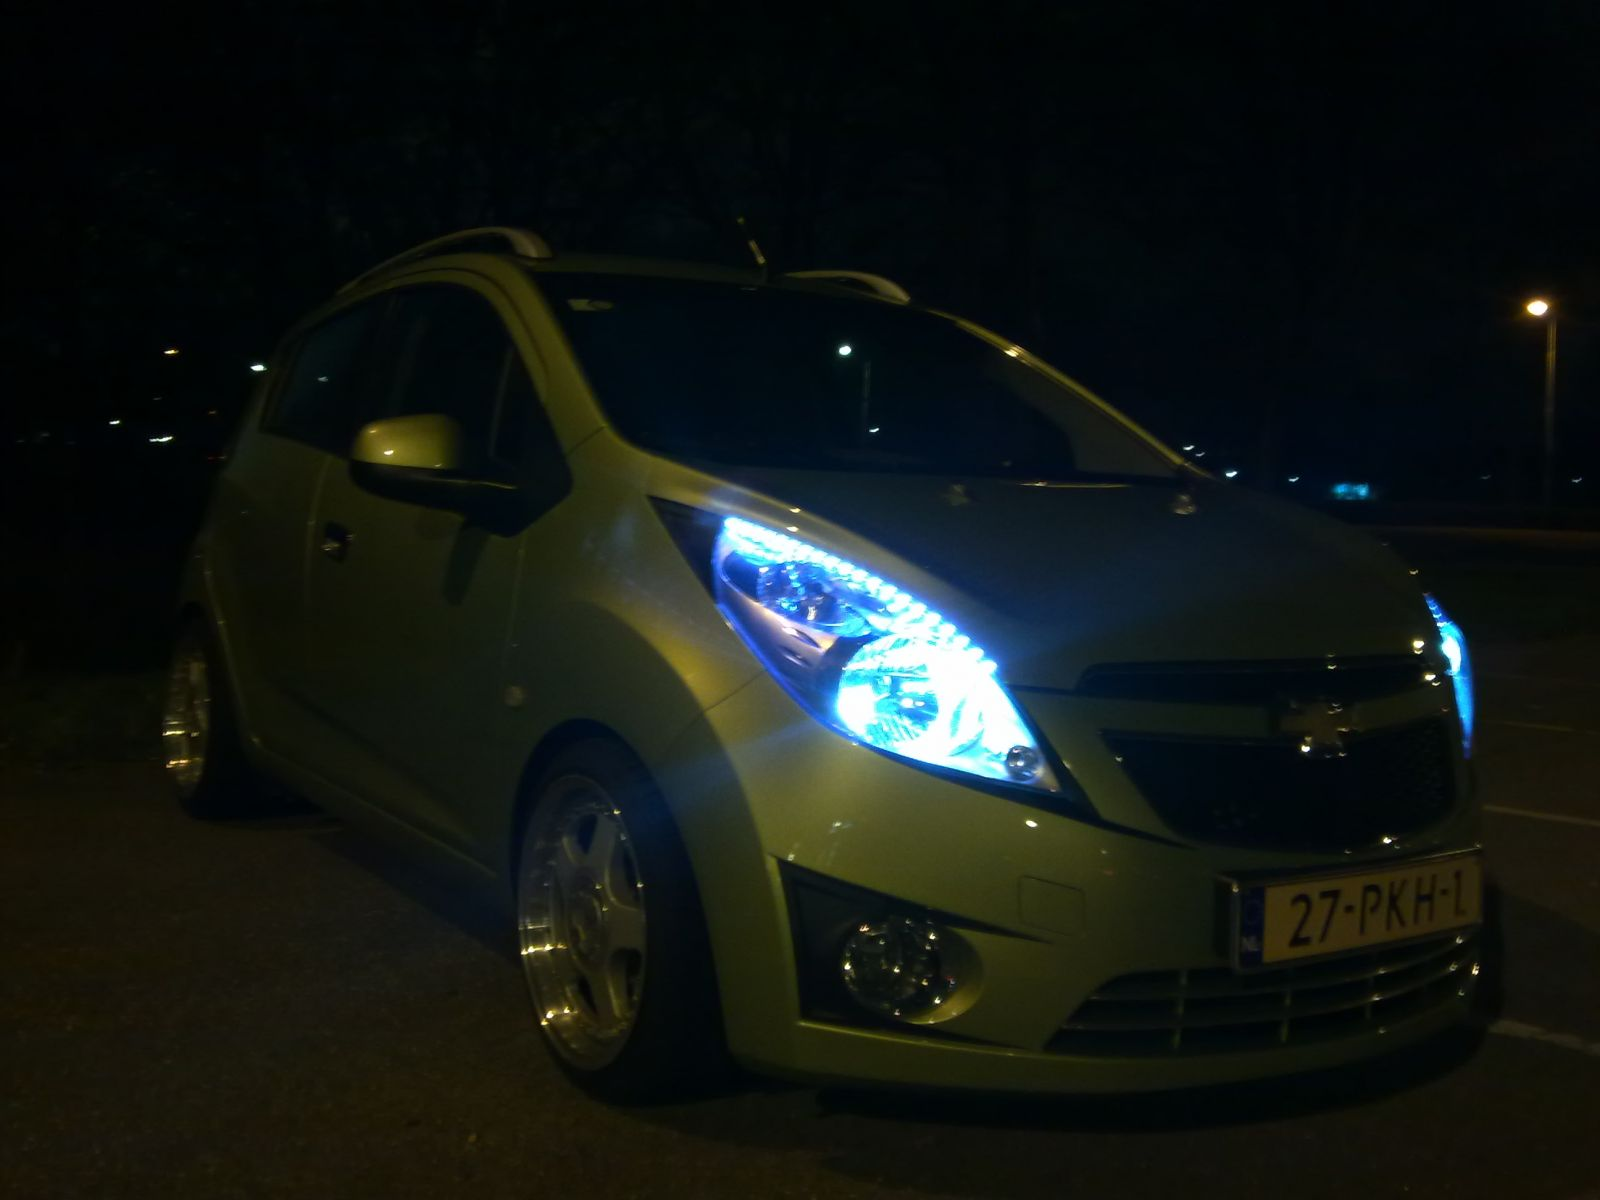 new carbon on the small windows and leds by night